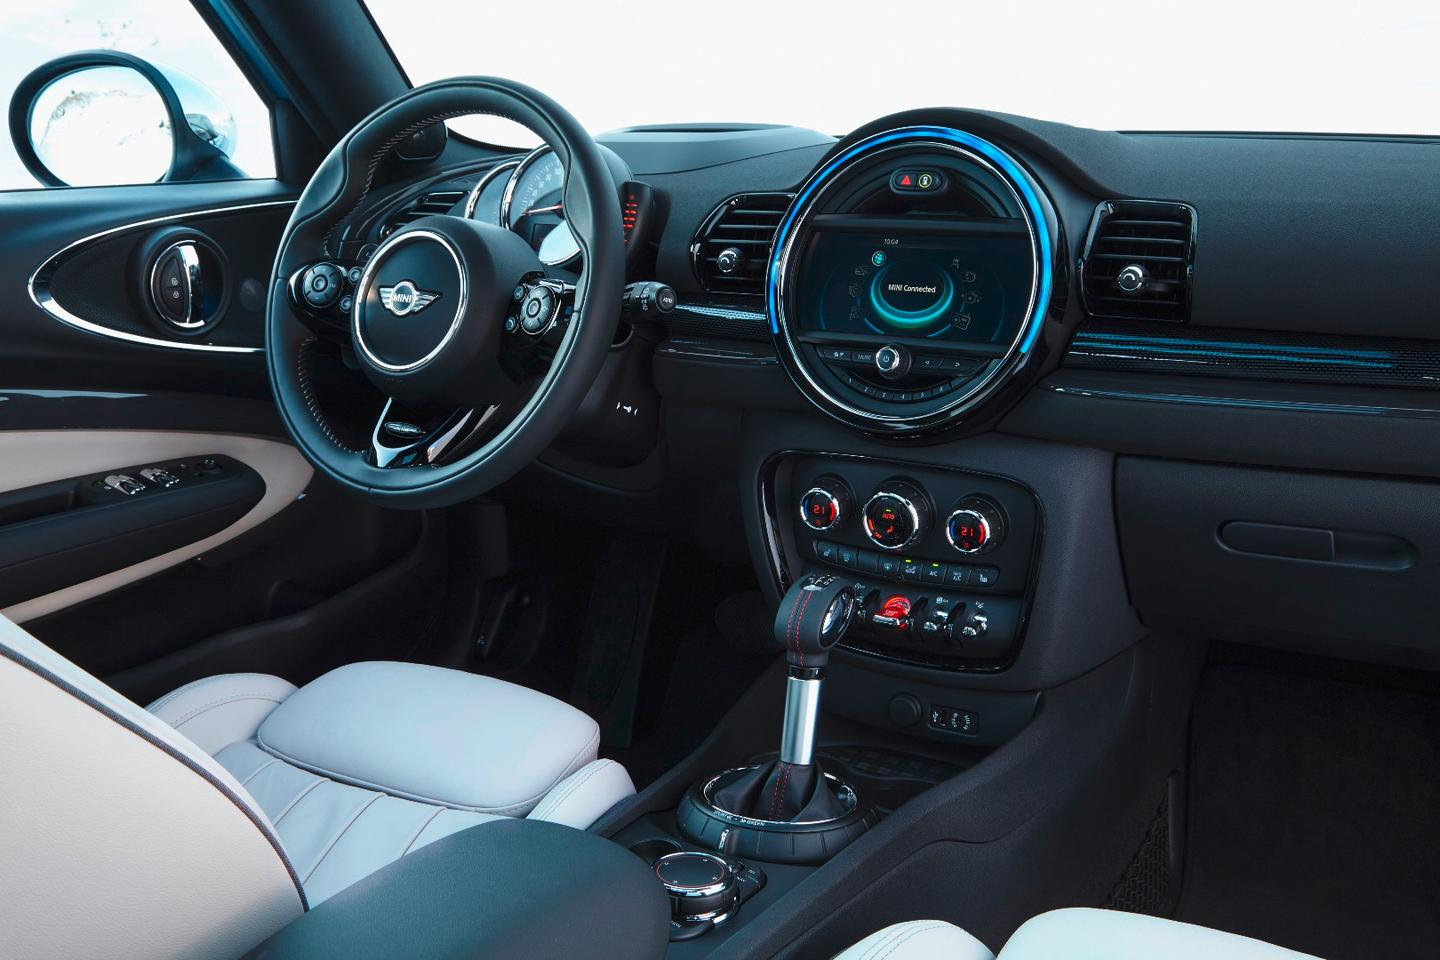 Interior features include the distinctive MINI Connected infotainment system and a head-up display